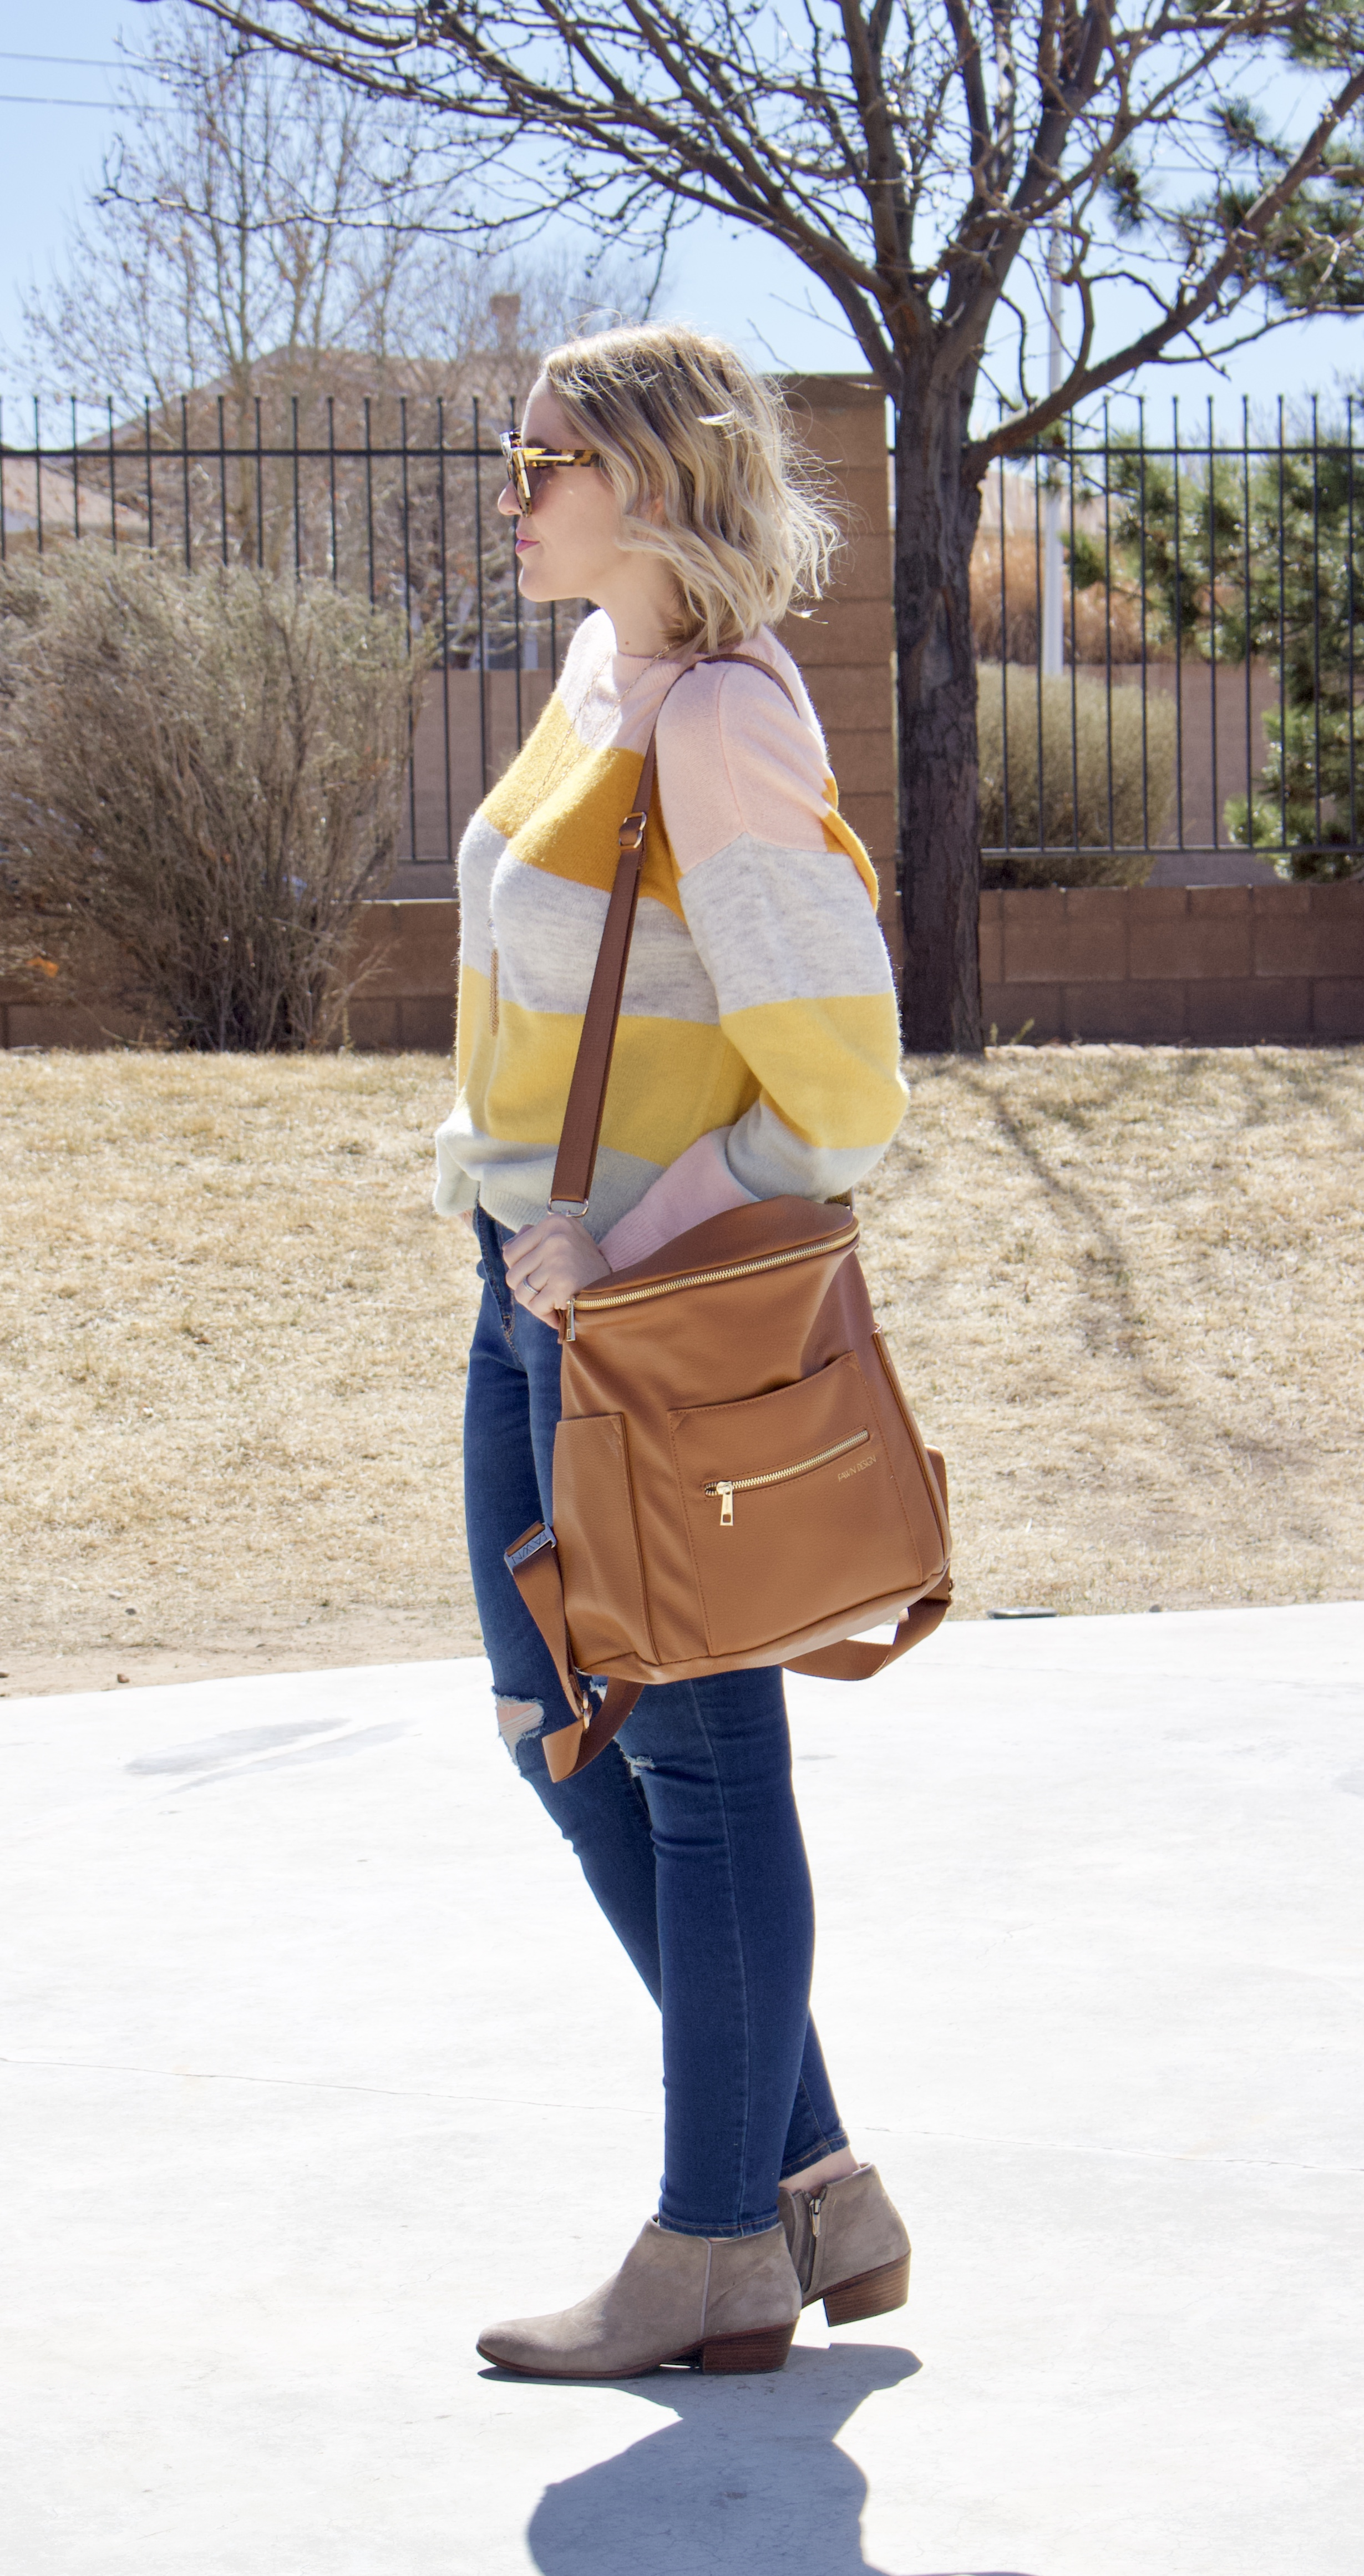 cute mom style striped sweater for spring #momstyle #fawndesign #springstyle